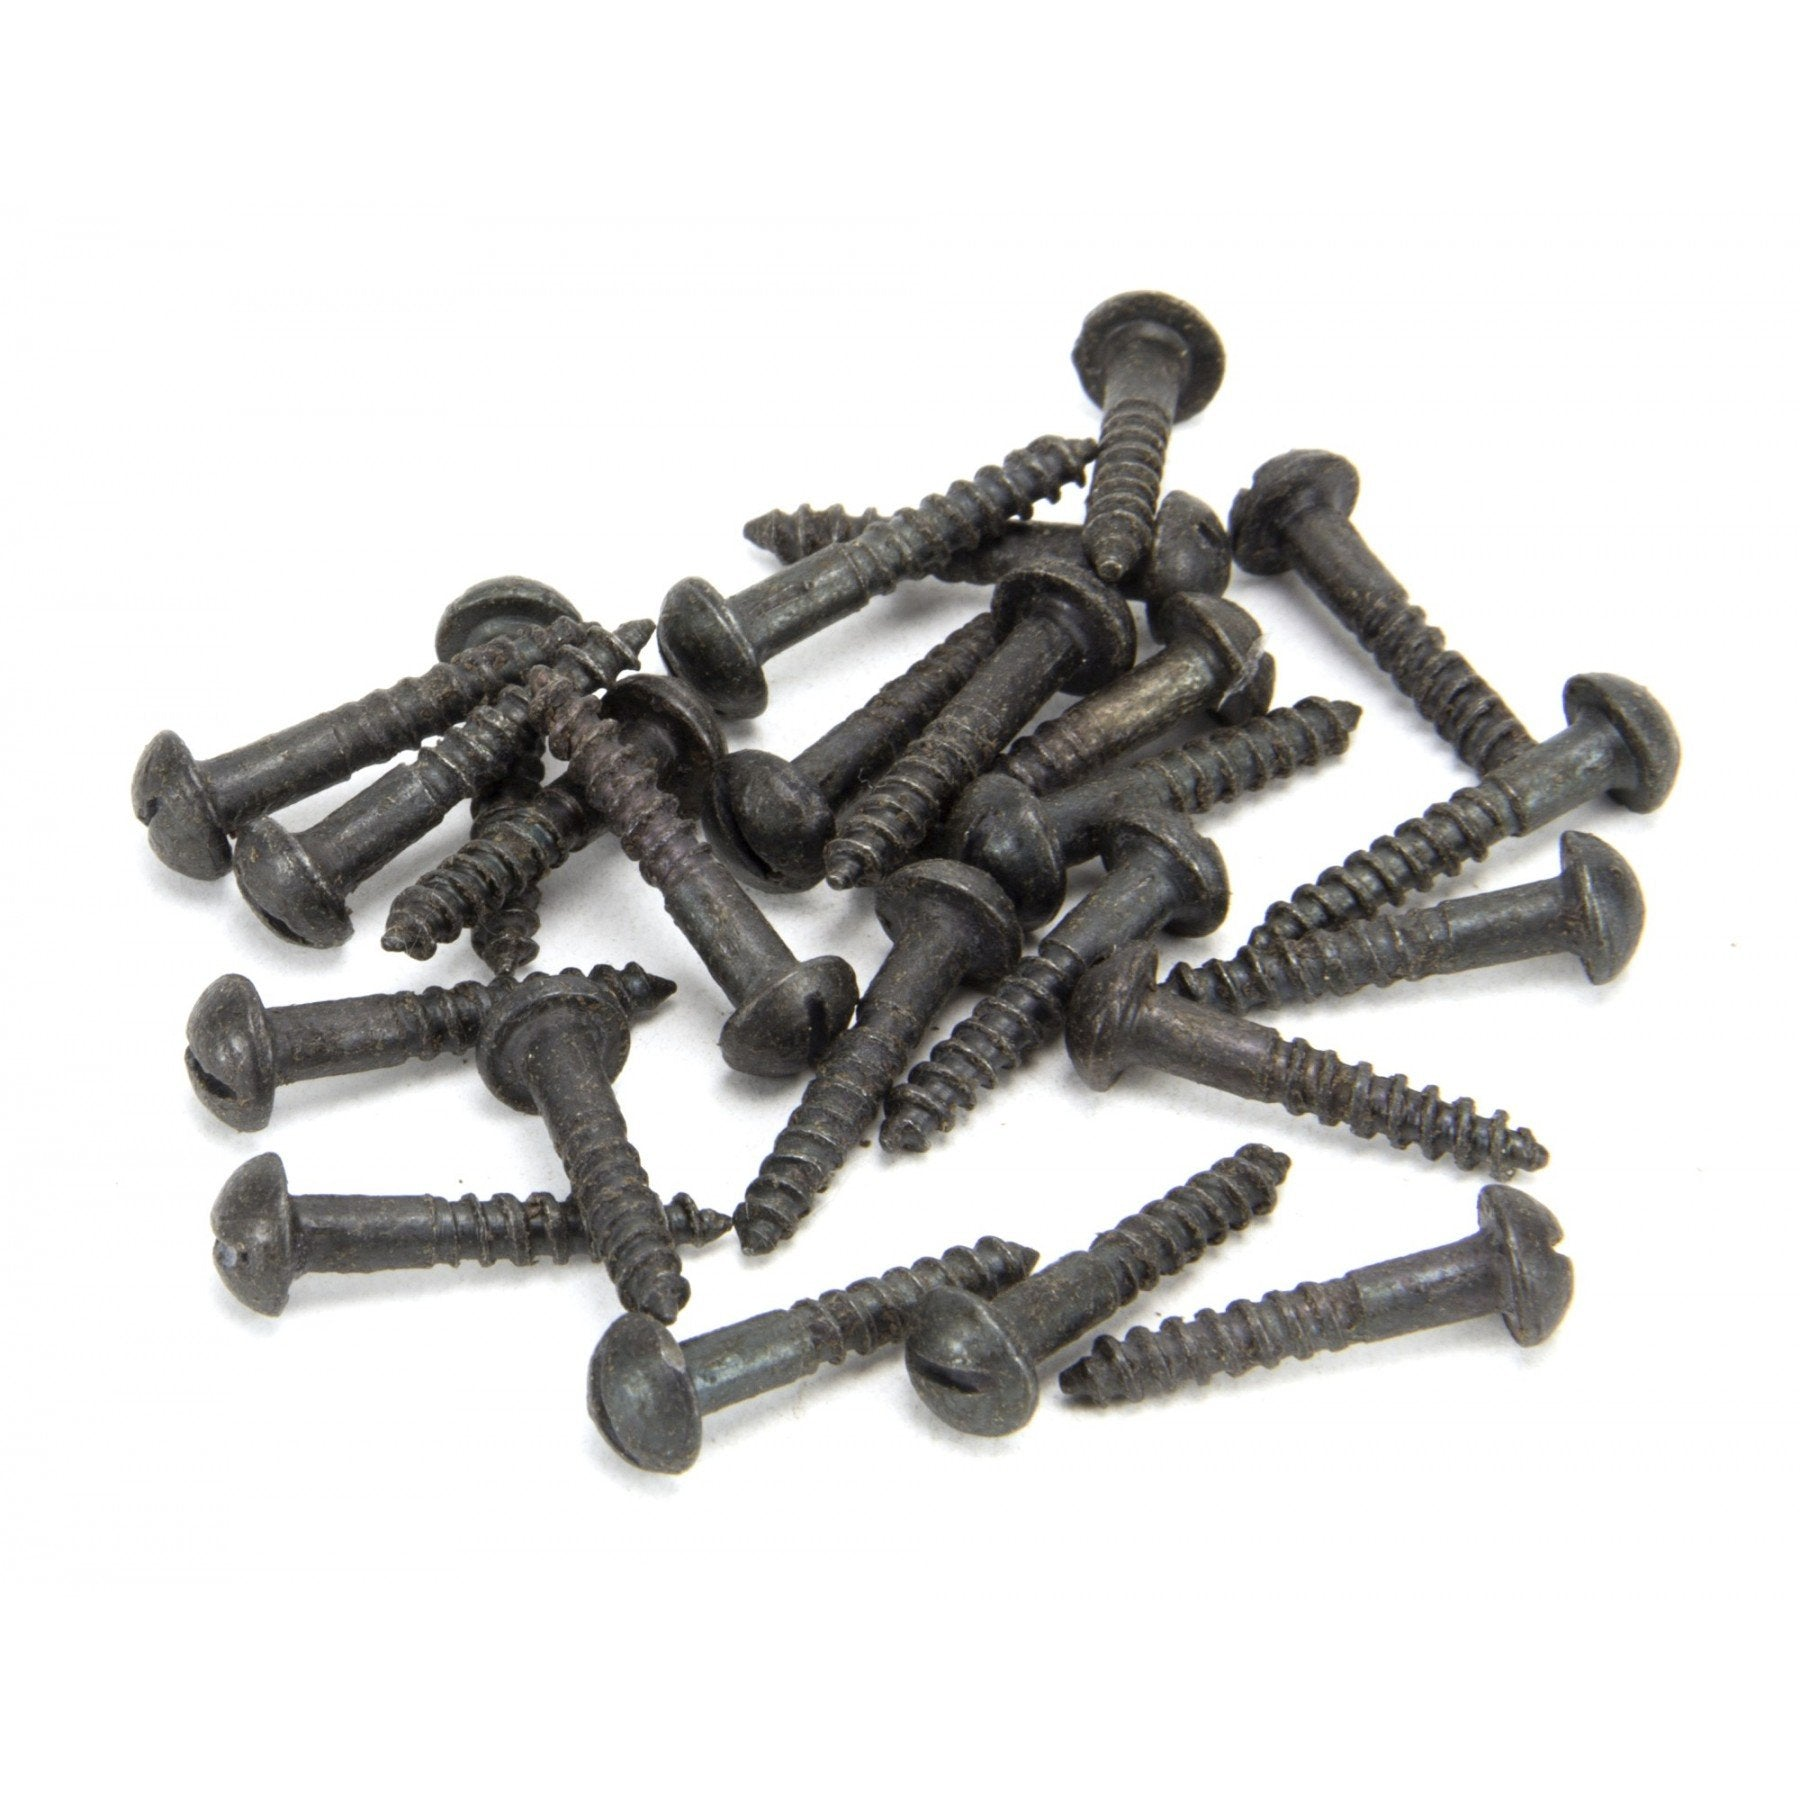 "Beeswax 8 x 1"" Round Head Screws (25) - No.42 Interiors"